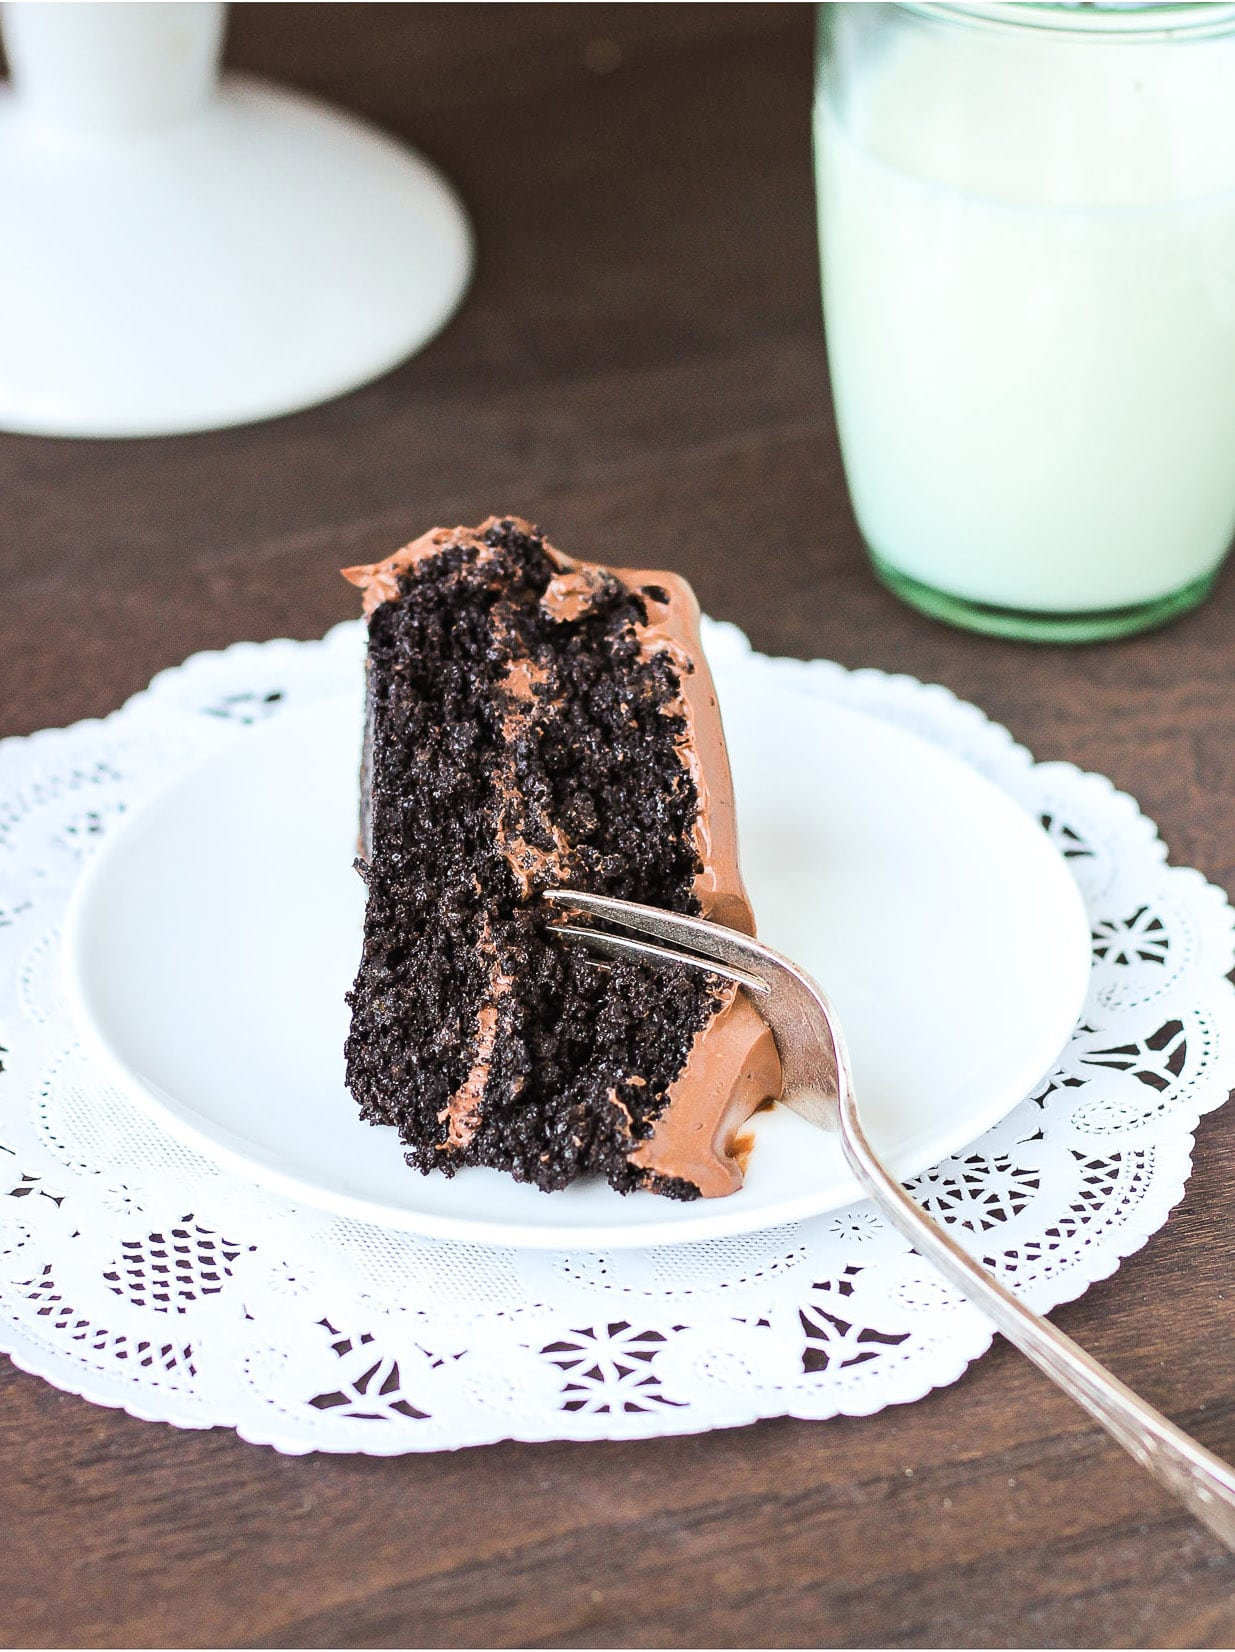 25 Drool-Worthy Chocolate Cake Recipes: Best-Ever Chocolate Quinoa Cake